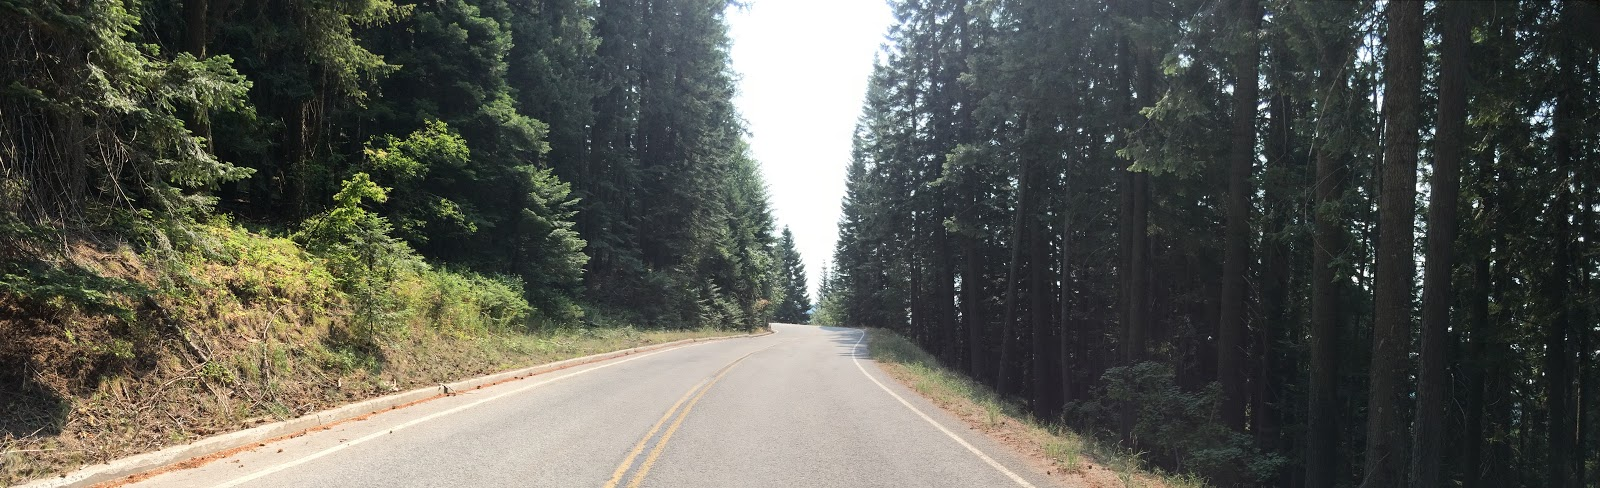 Cycling Mt. Spokane Park Drive - roadway surrounded by forest